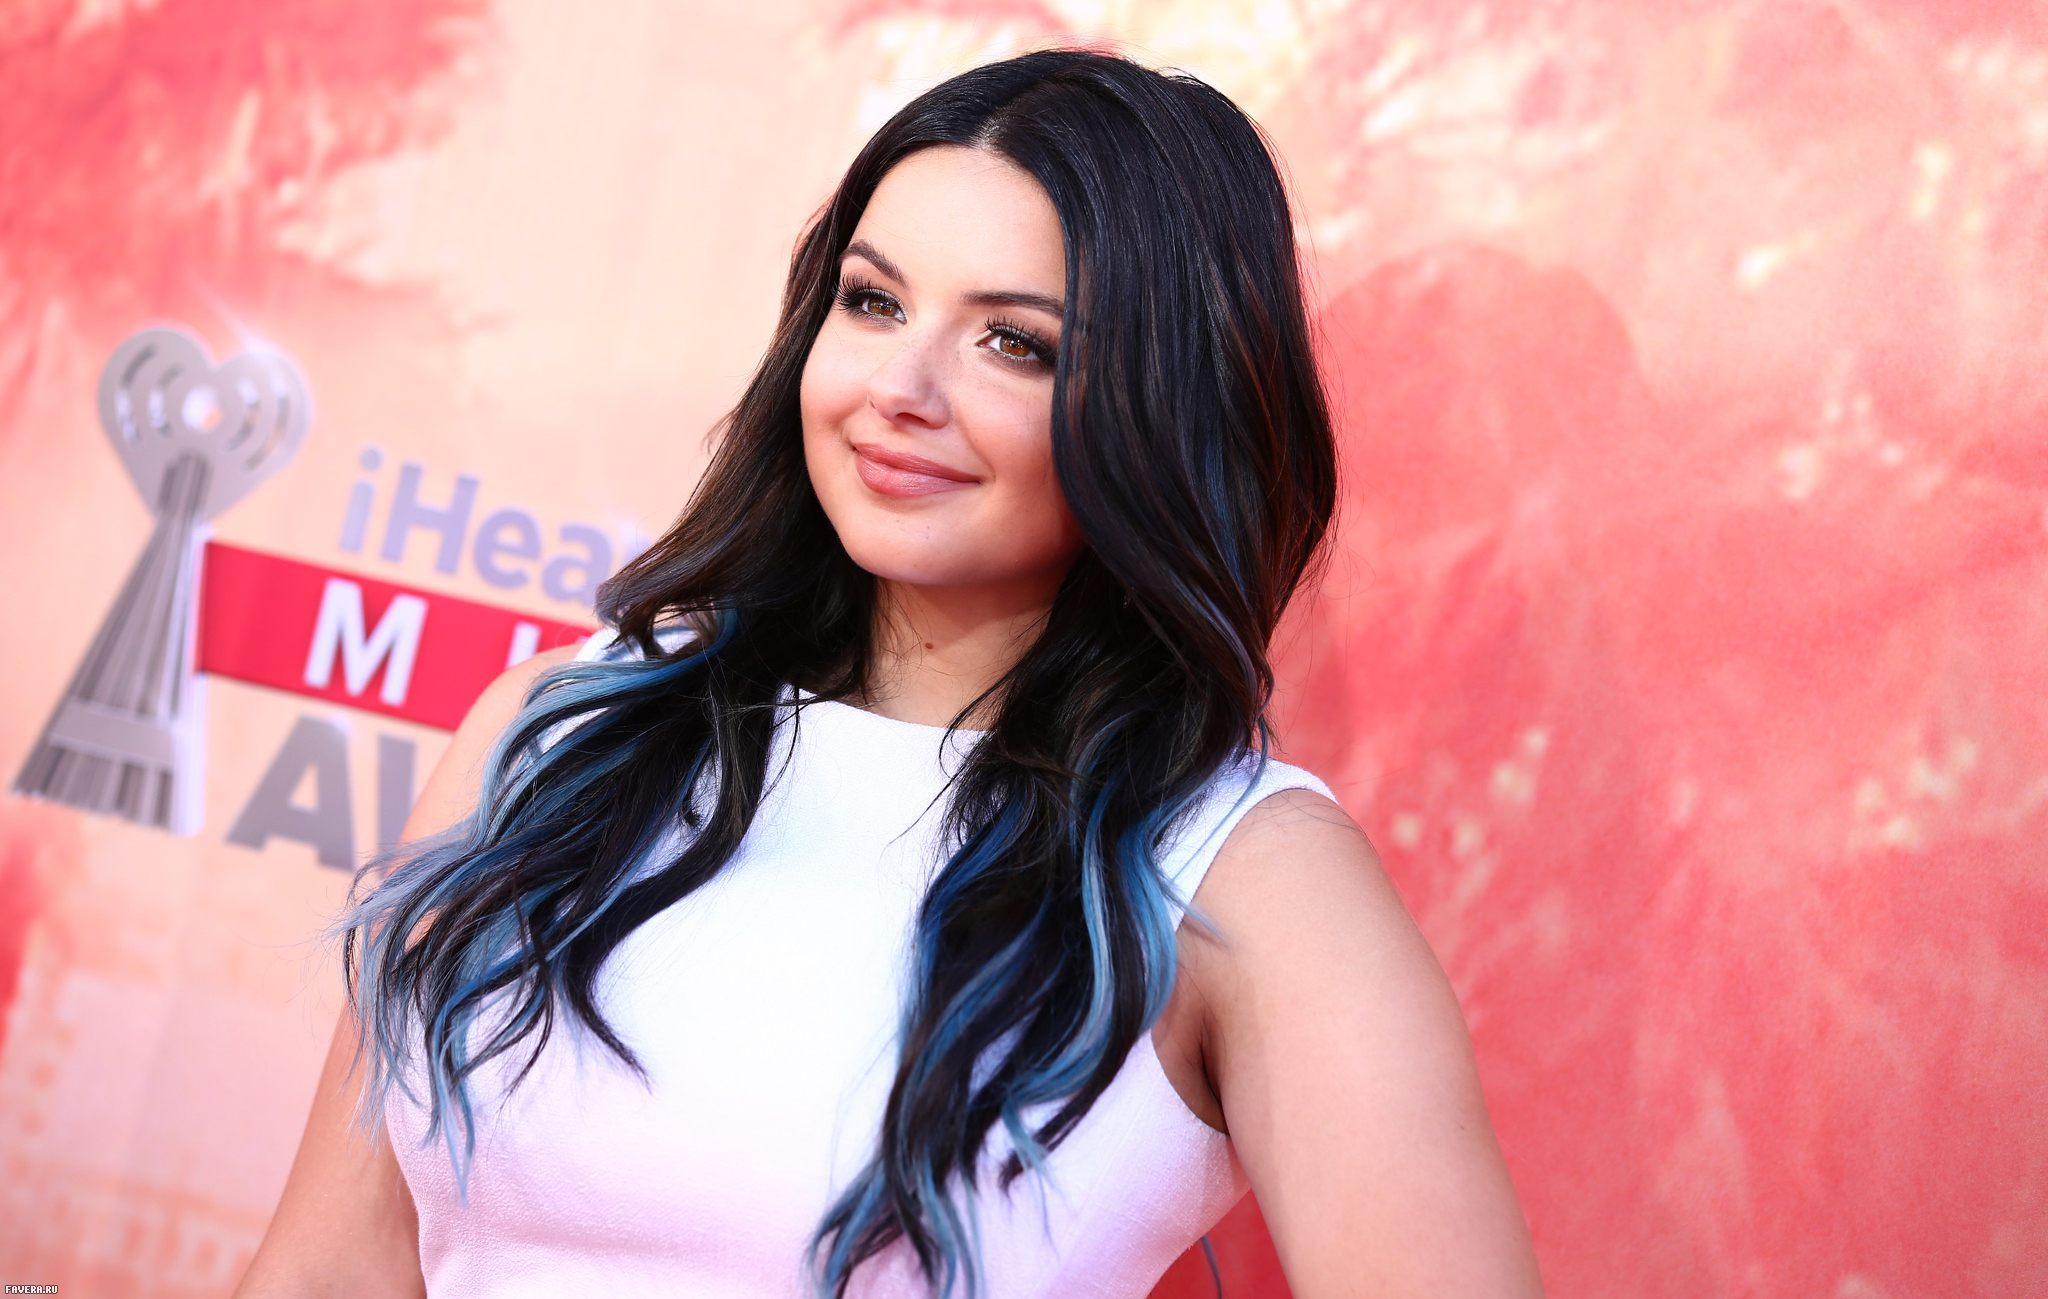 Pictures Of Ariel Winter